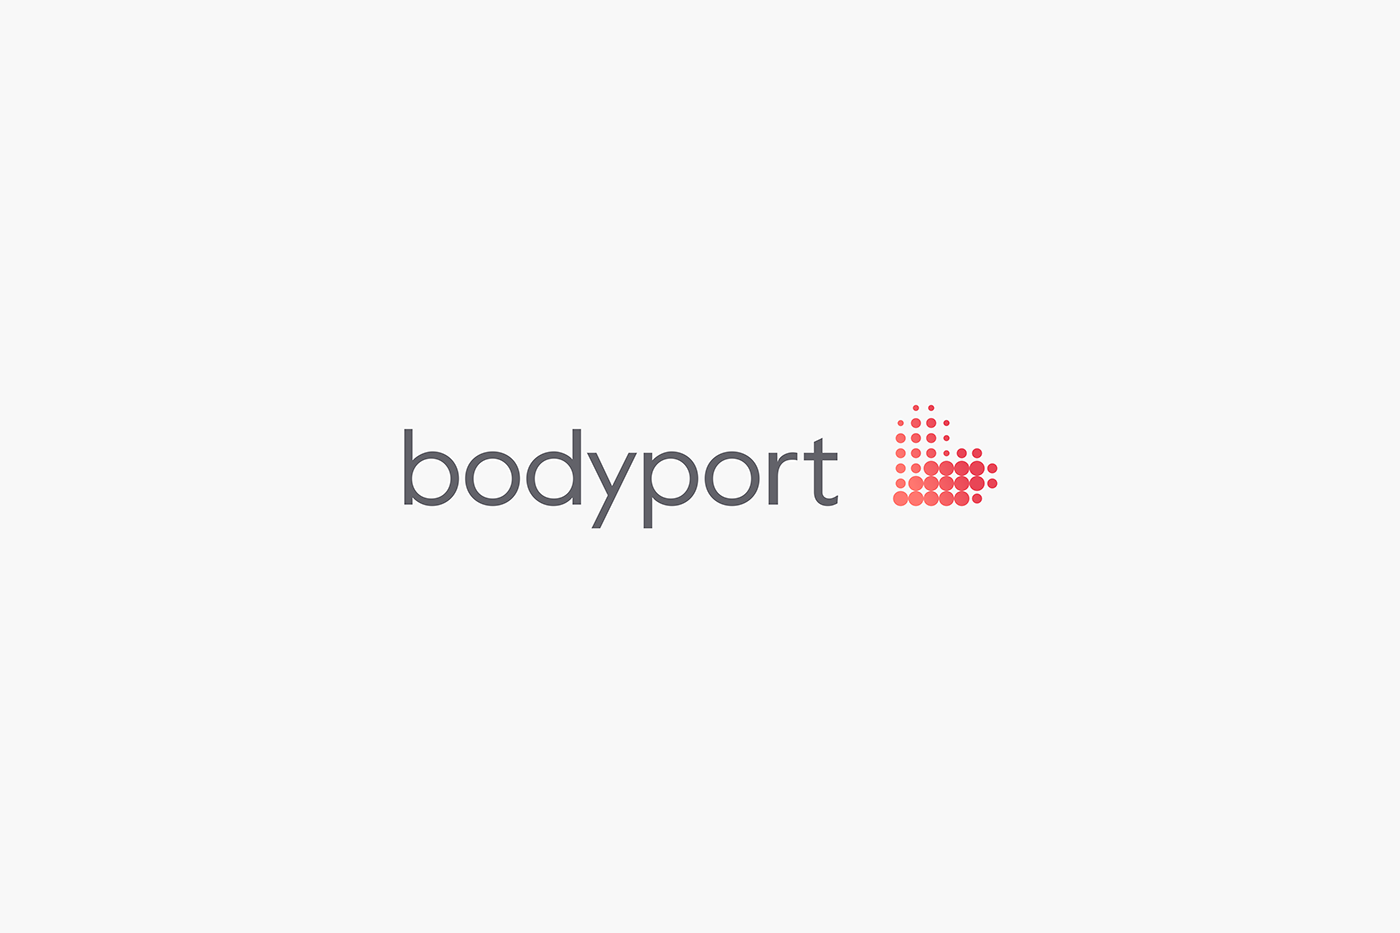 Web Design & UI/UX: Bodyport Start-up